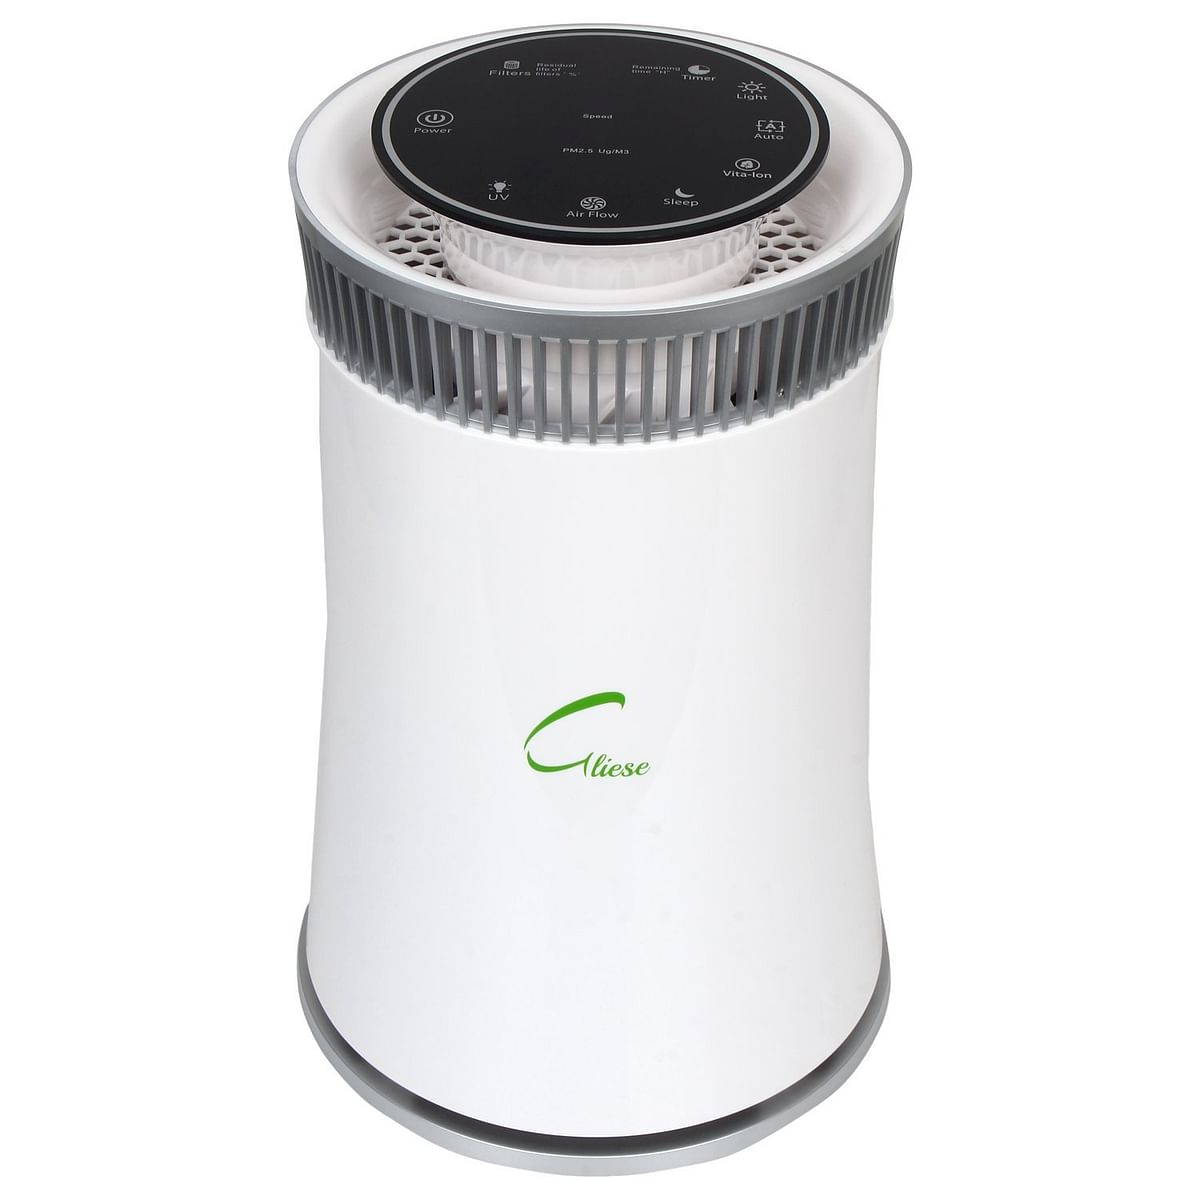 The Gliese Magic air purifier comes with an activated carbon filter.